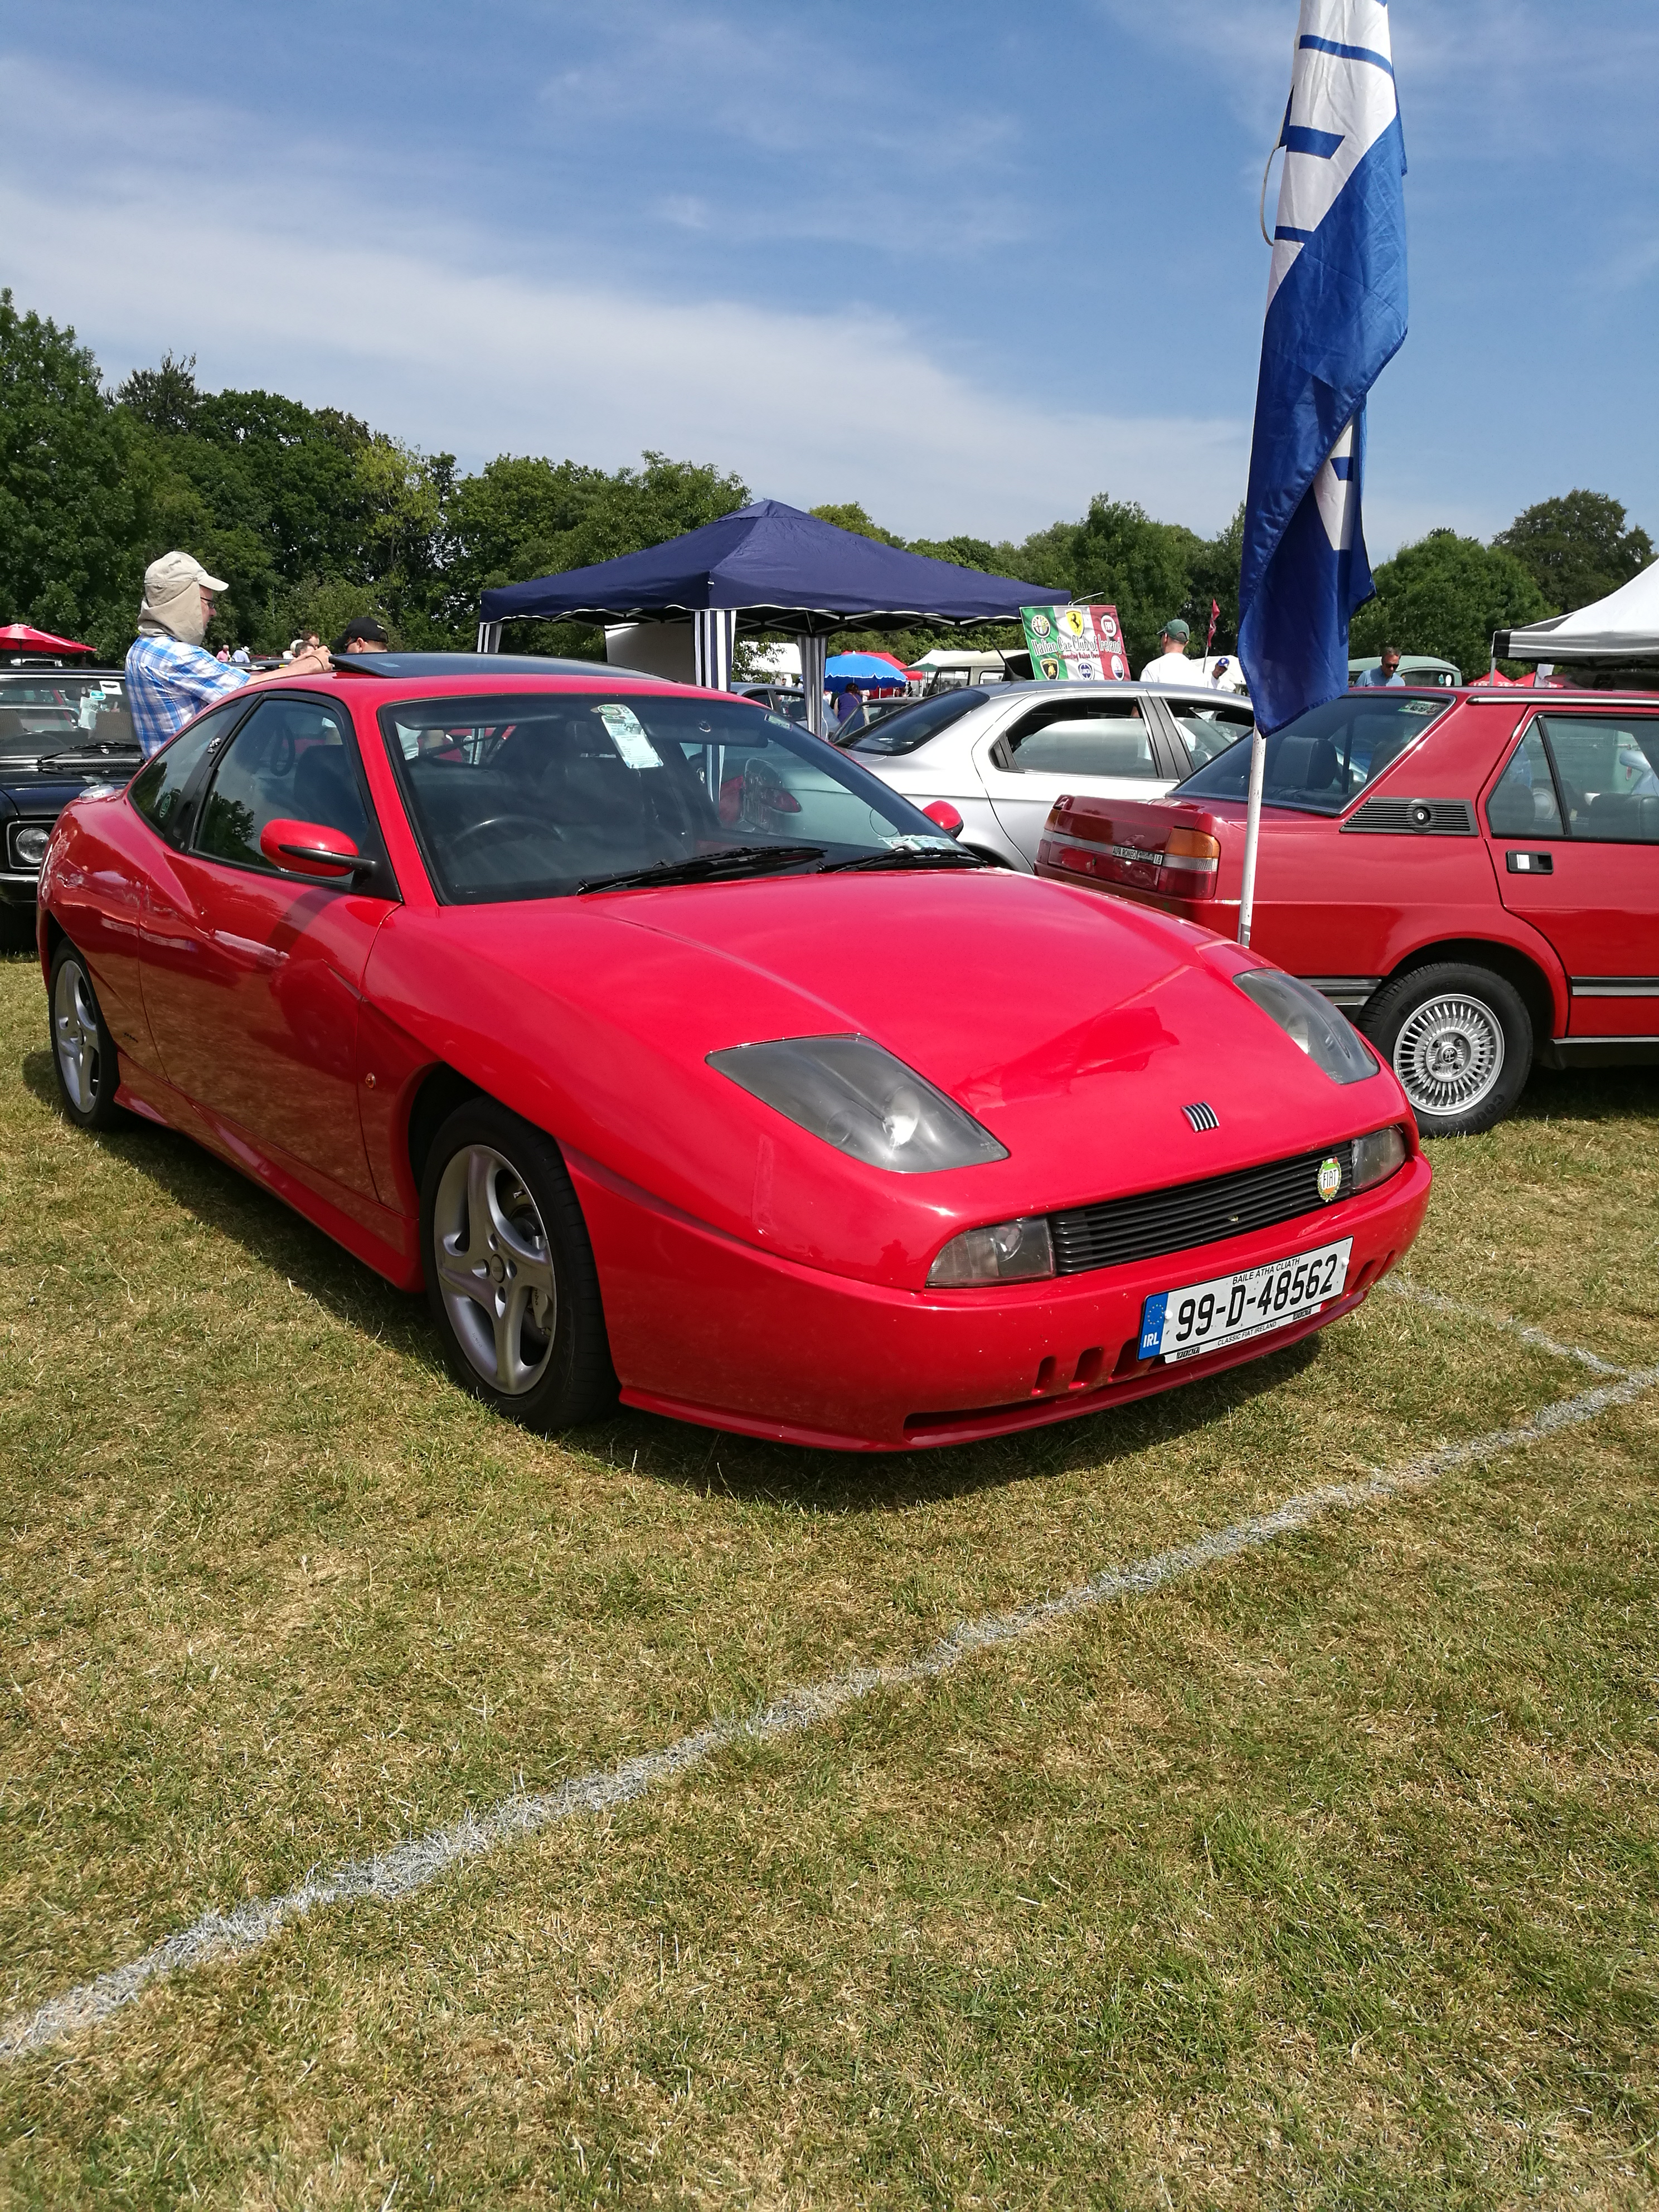 The other lady in red the Fiat Coupe